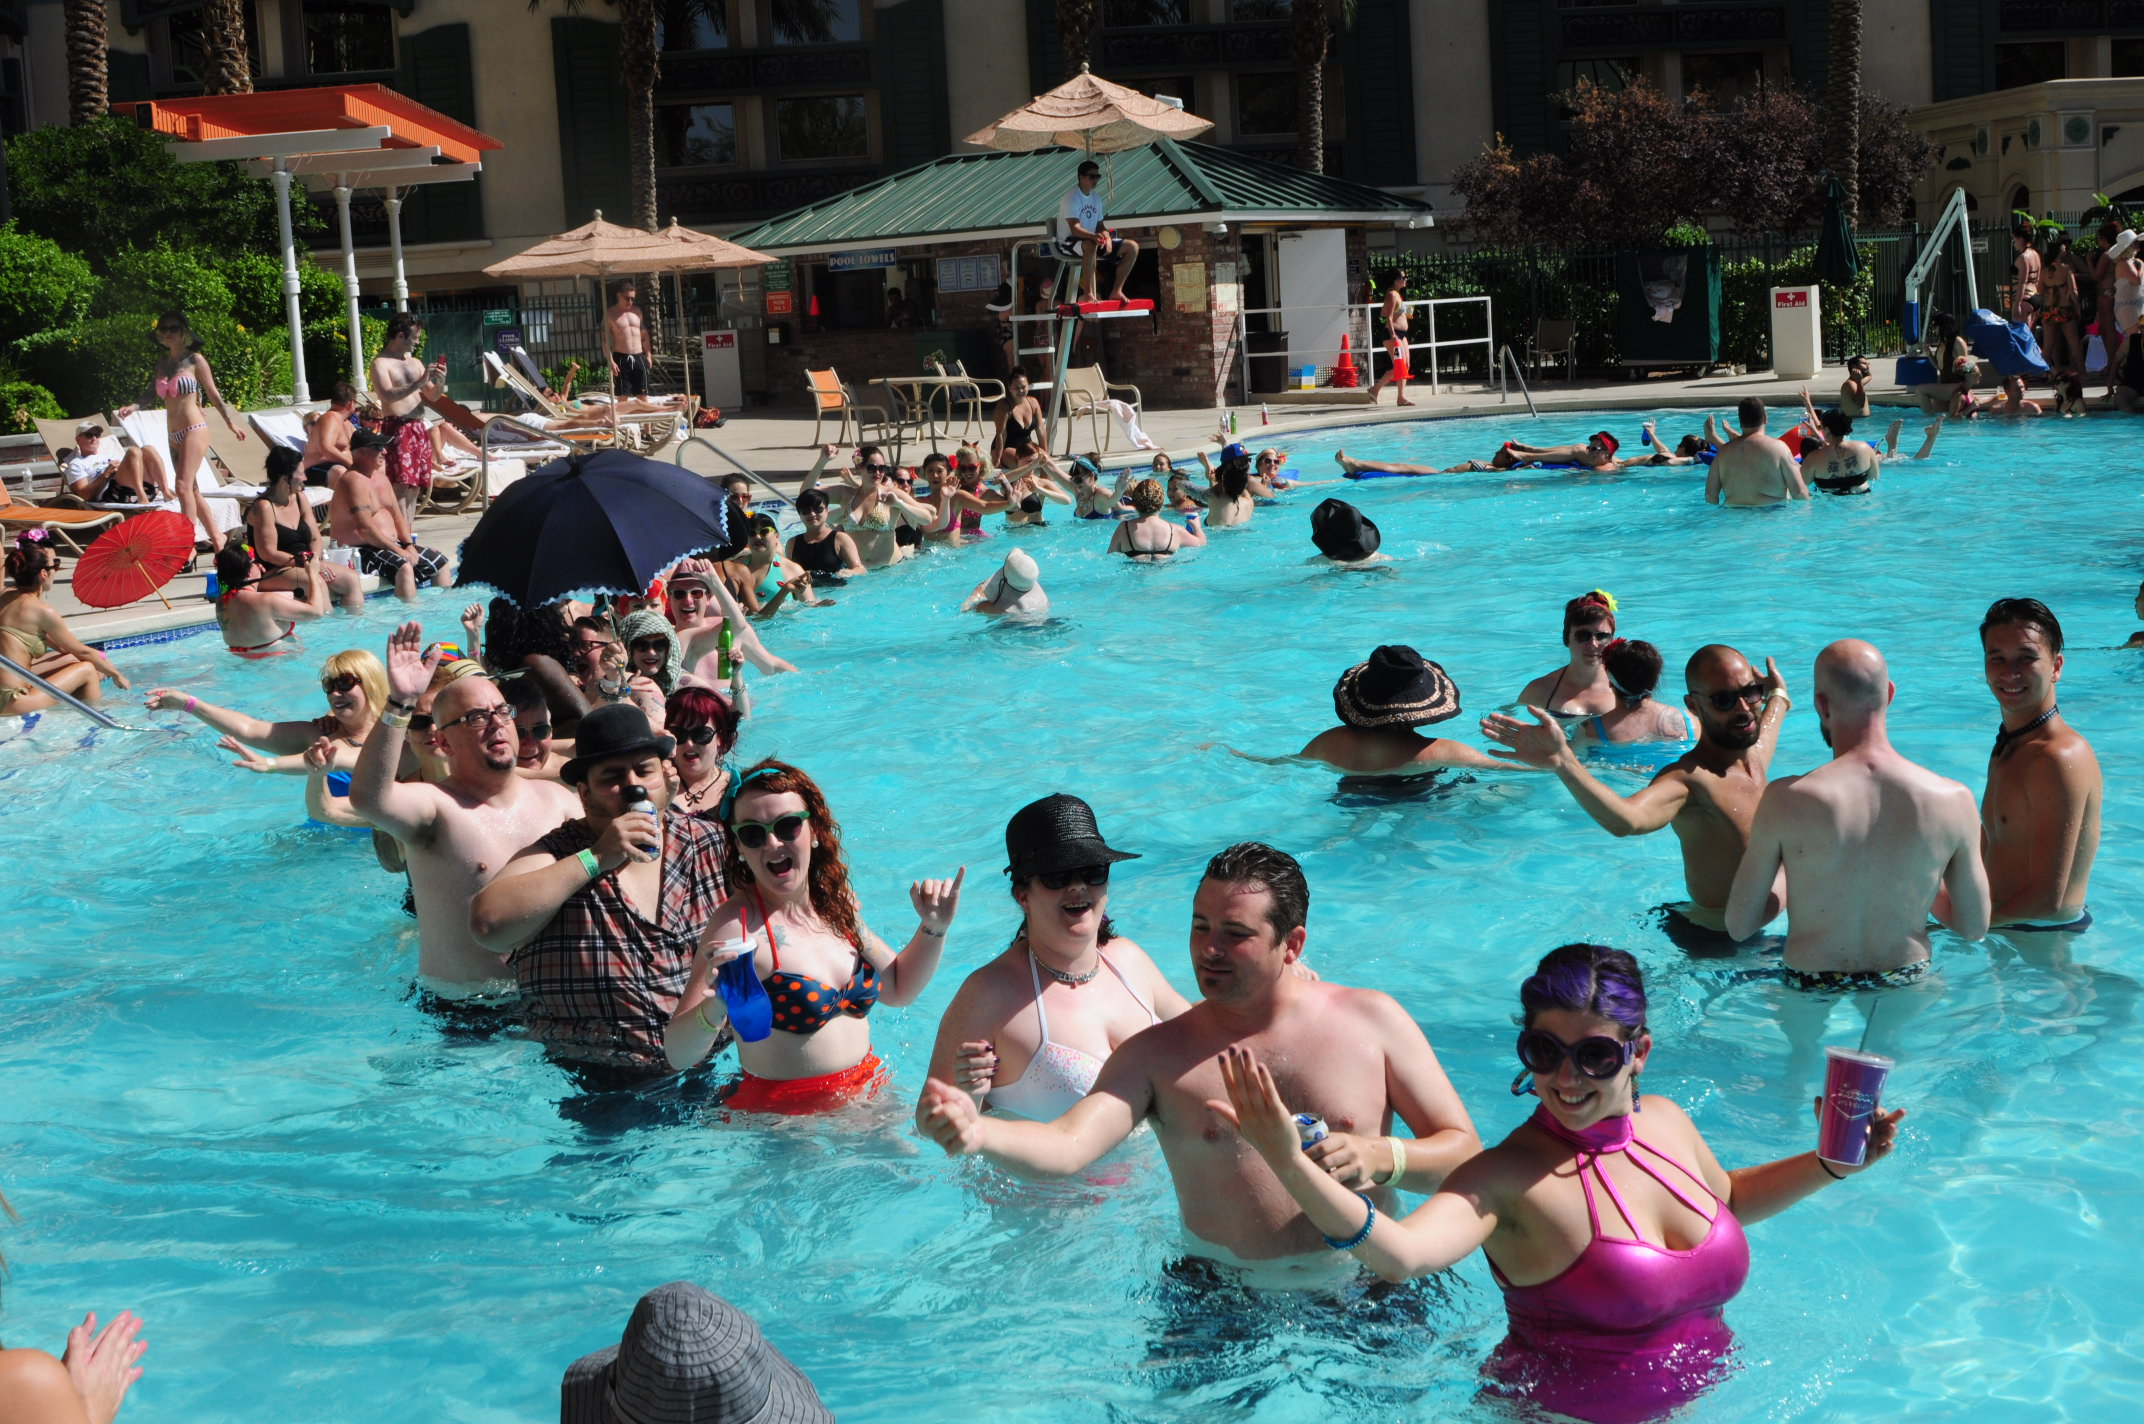 BHOF attendees doing a conga line in the swimming pool at the 2014 Sunday afternoon pool party